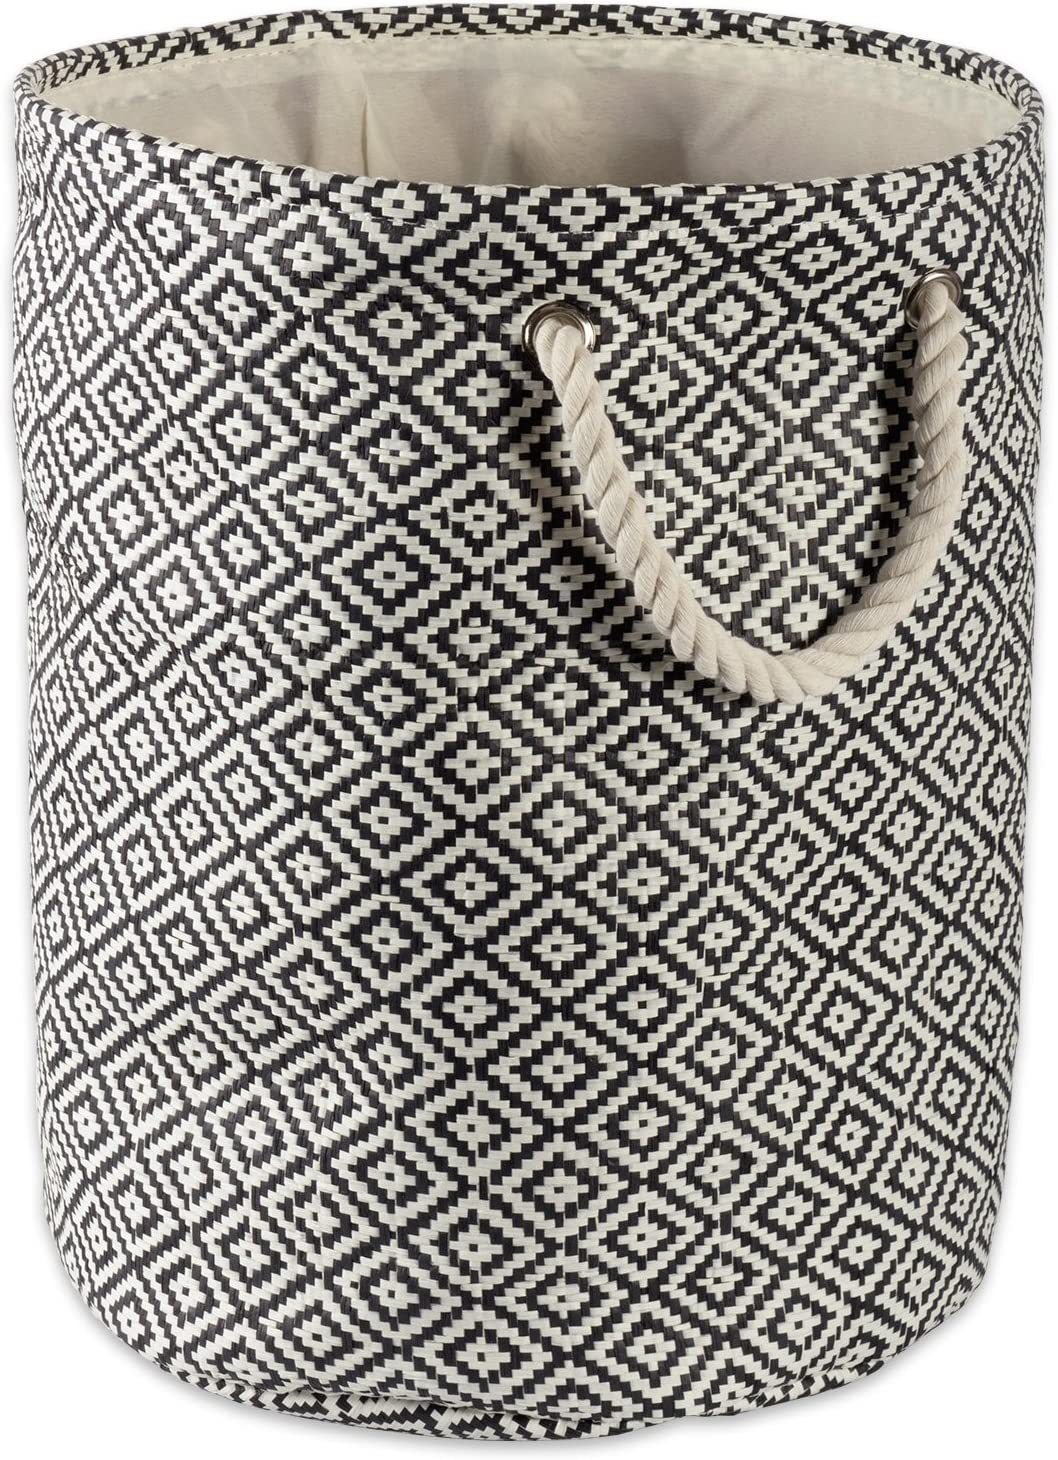 DII Geo Diamond Woven Paper Laundry Hamper or Storage Bin, Medium Round, Black